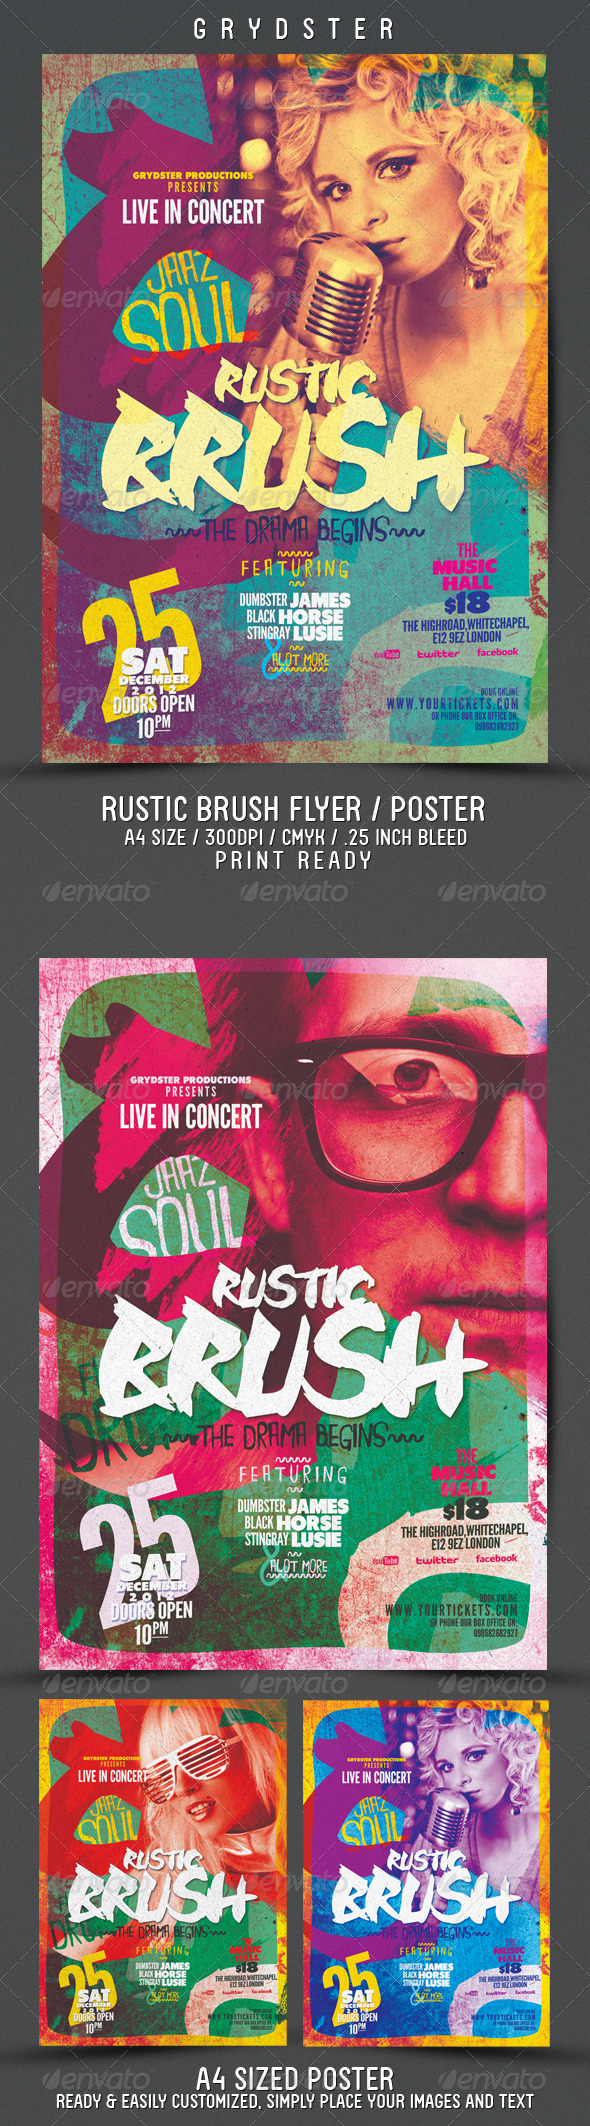 Rustic Brush Poster / Flyer - Concerts Events